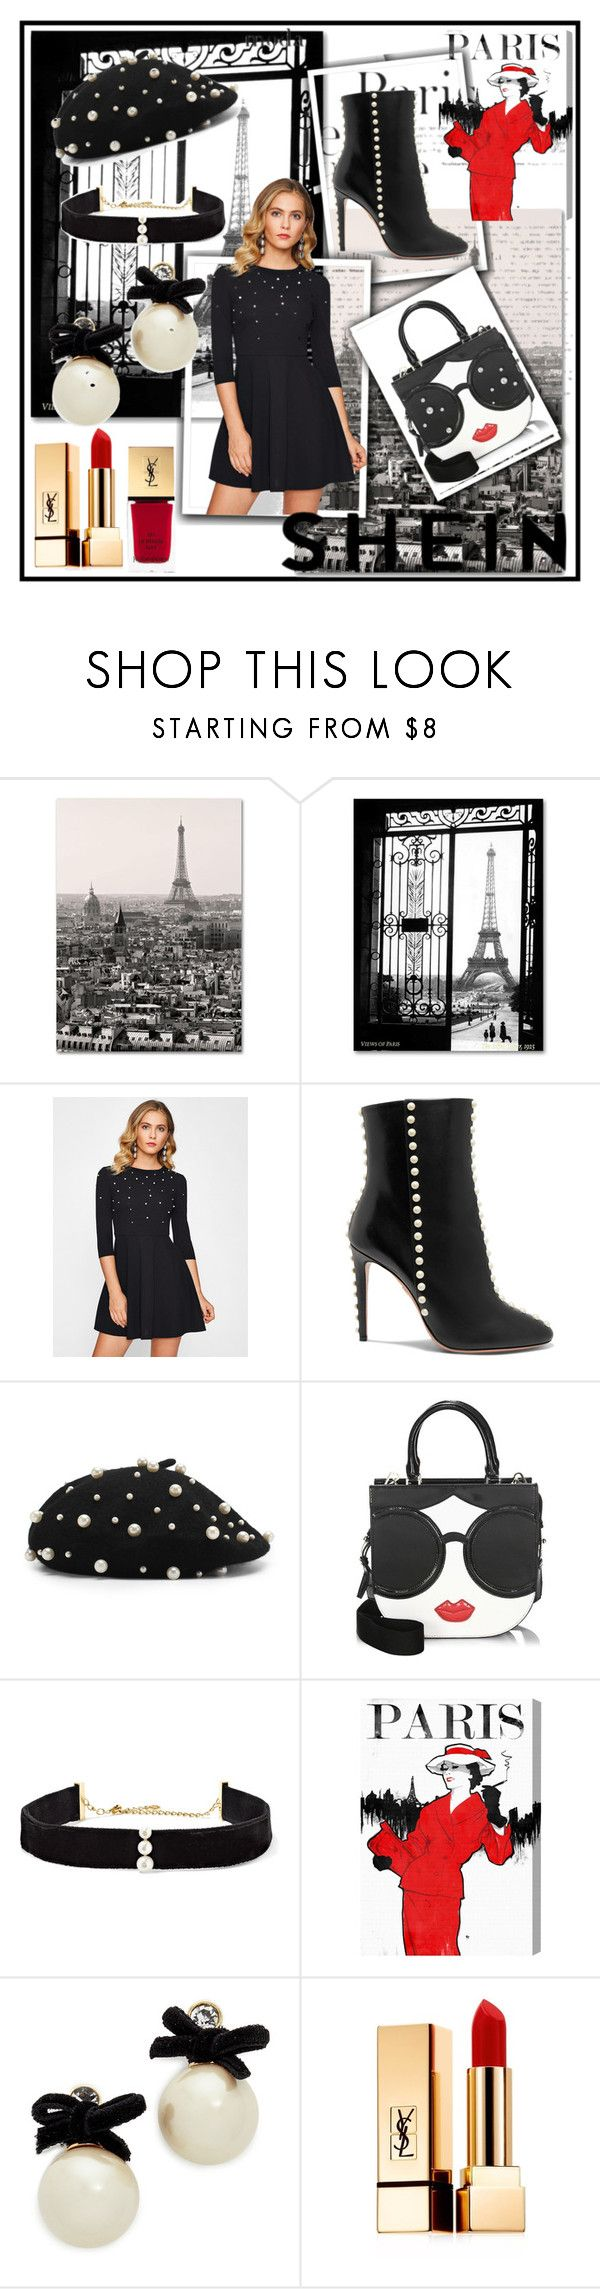 """SHEIN CONTEST👄"" by lakisha-34 ❤ liked on Polyvore featuring Trademark Fine Art, Aquazzura, Alice + Olivia, Anissa Kermiche, Oliver Gal Artist Co., Kate Spade and Yves Saint Laurent"